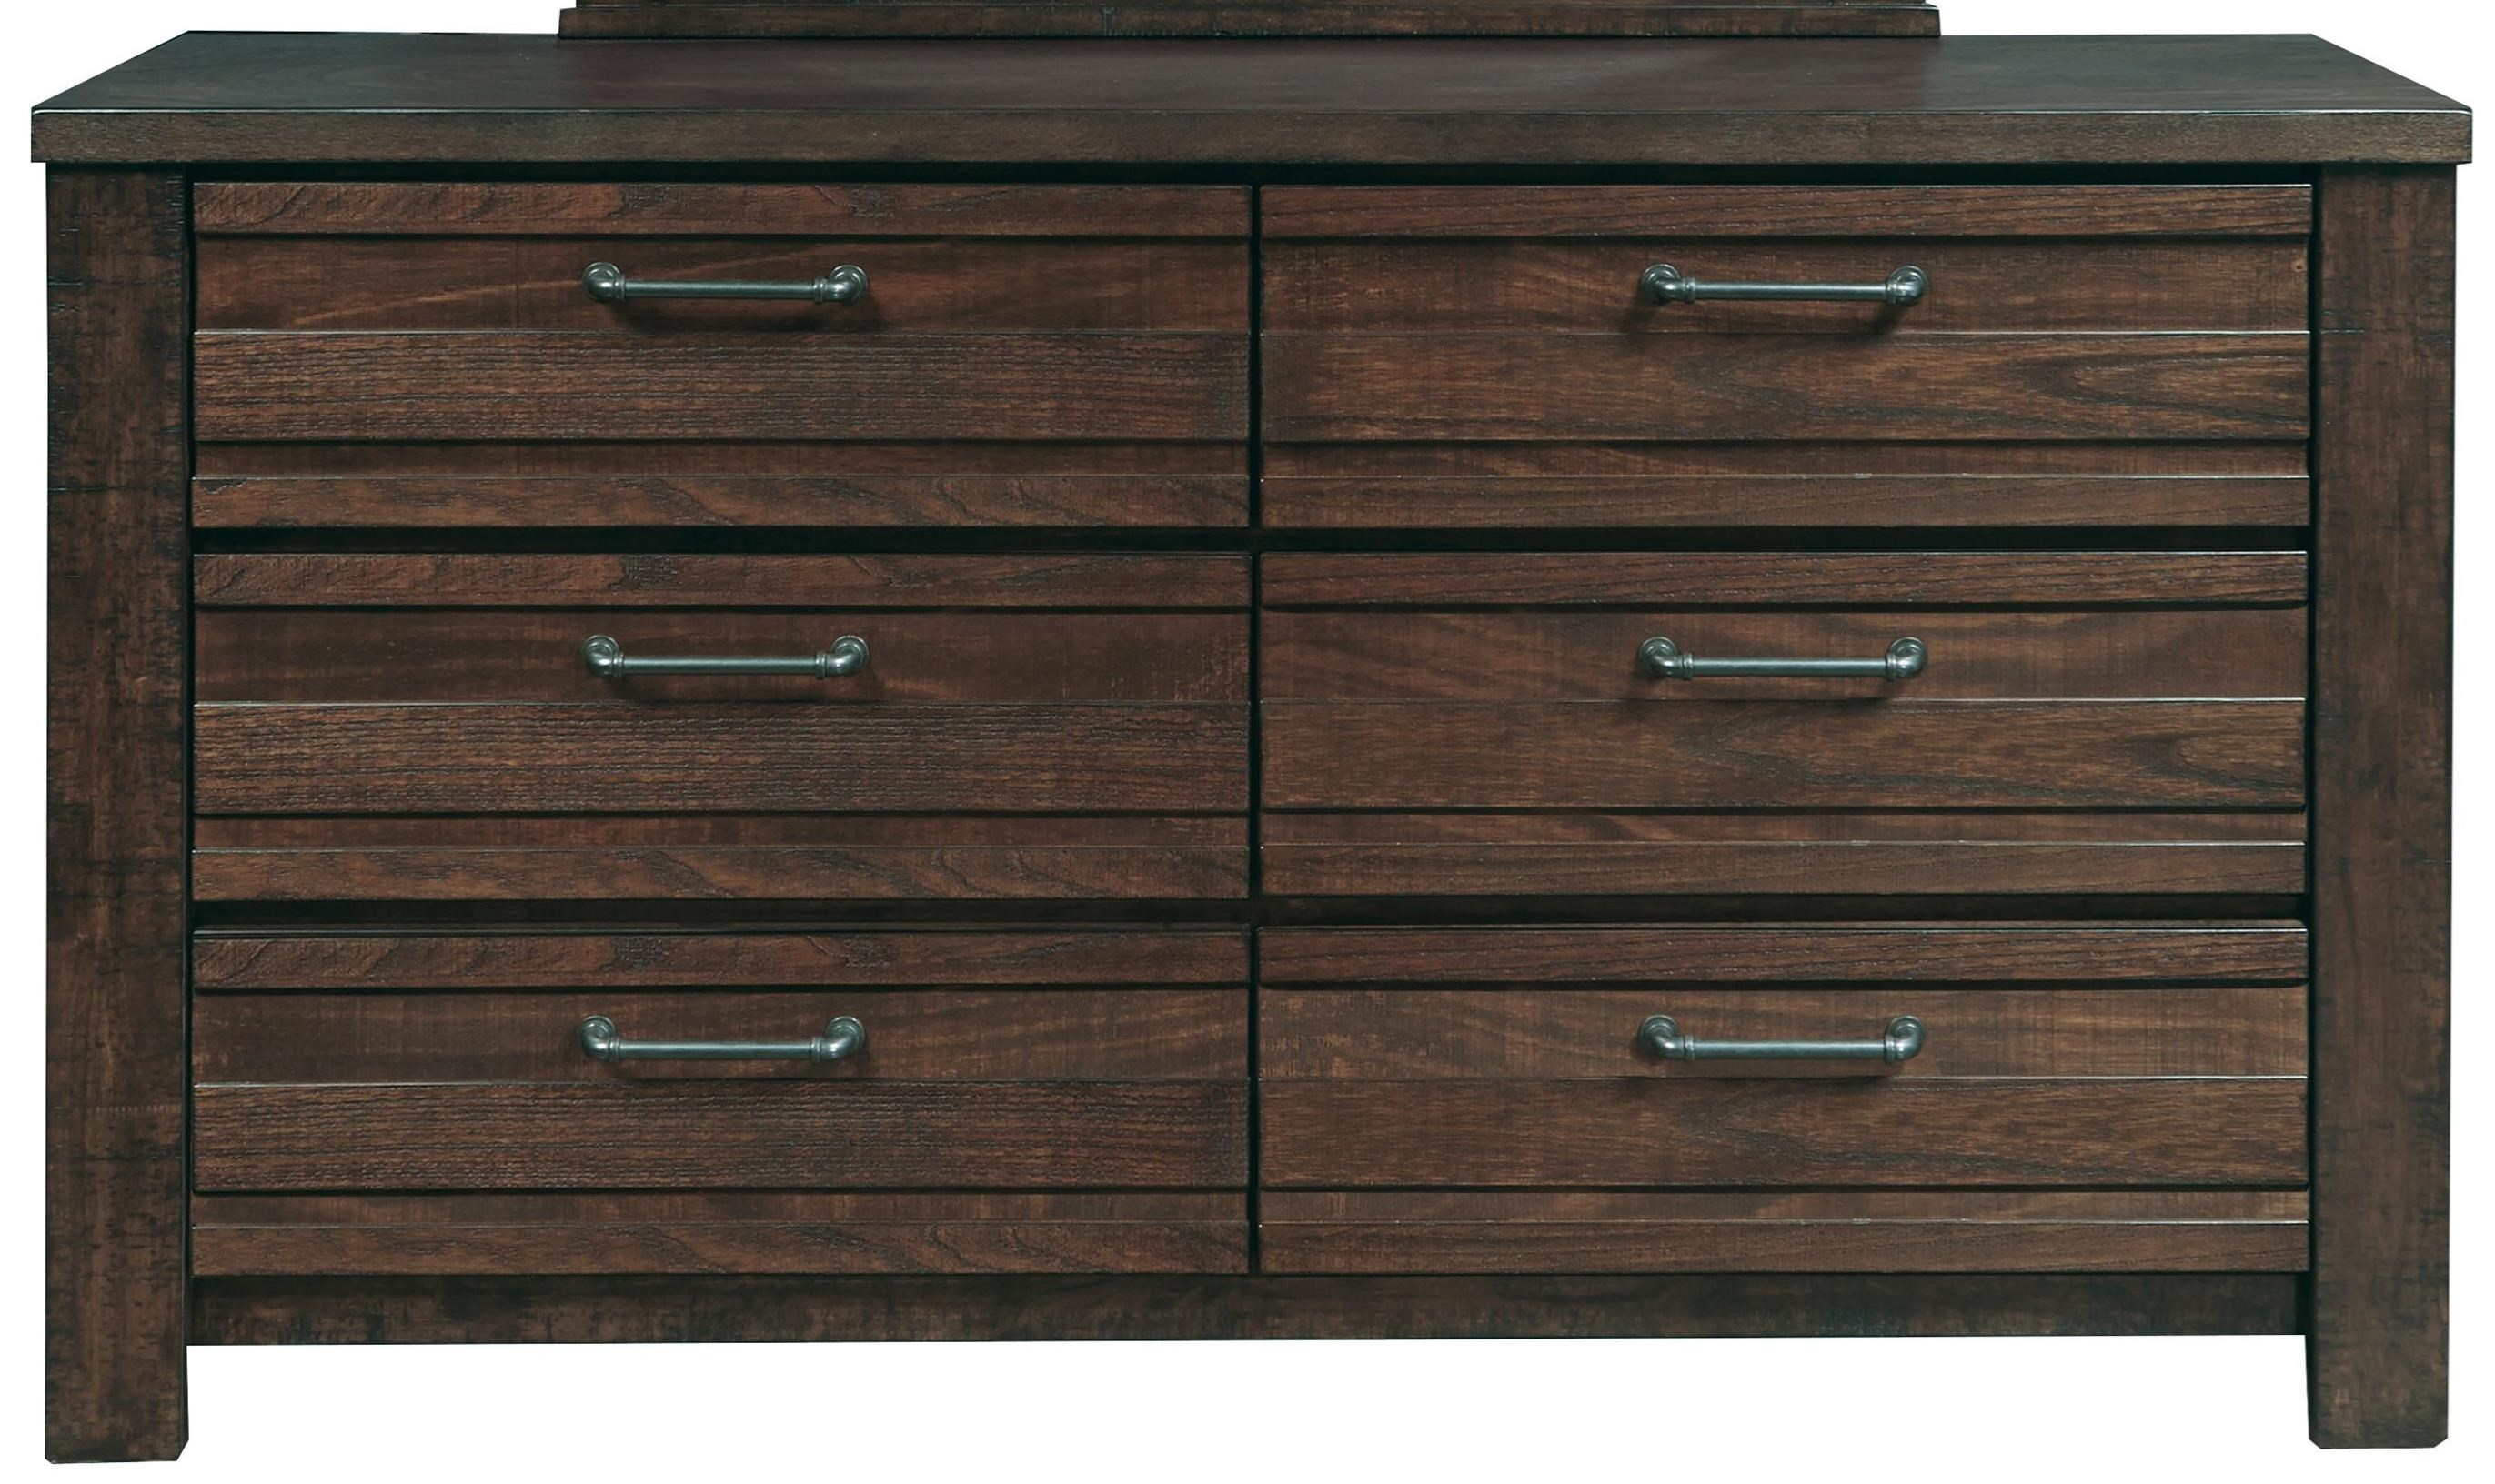 Rutherford Rutherford Drawer Dresser by Samuel Lawrence at Morris Home